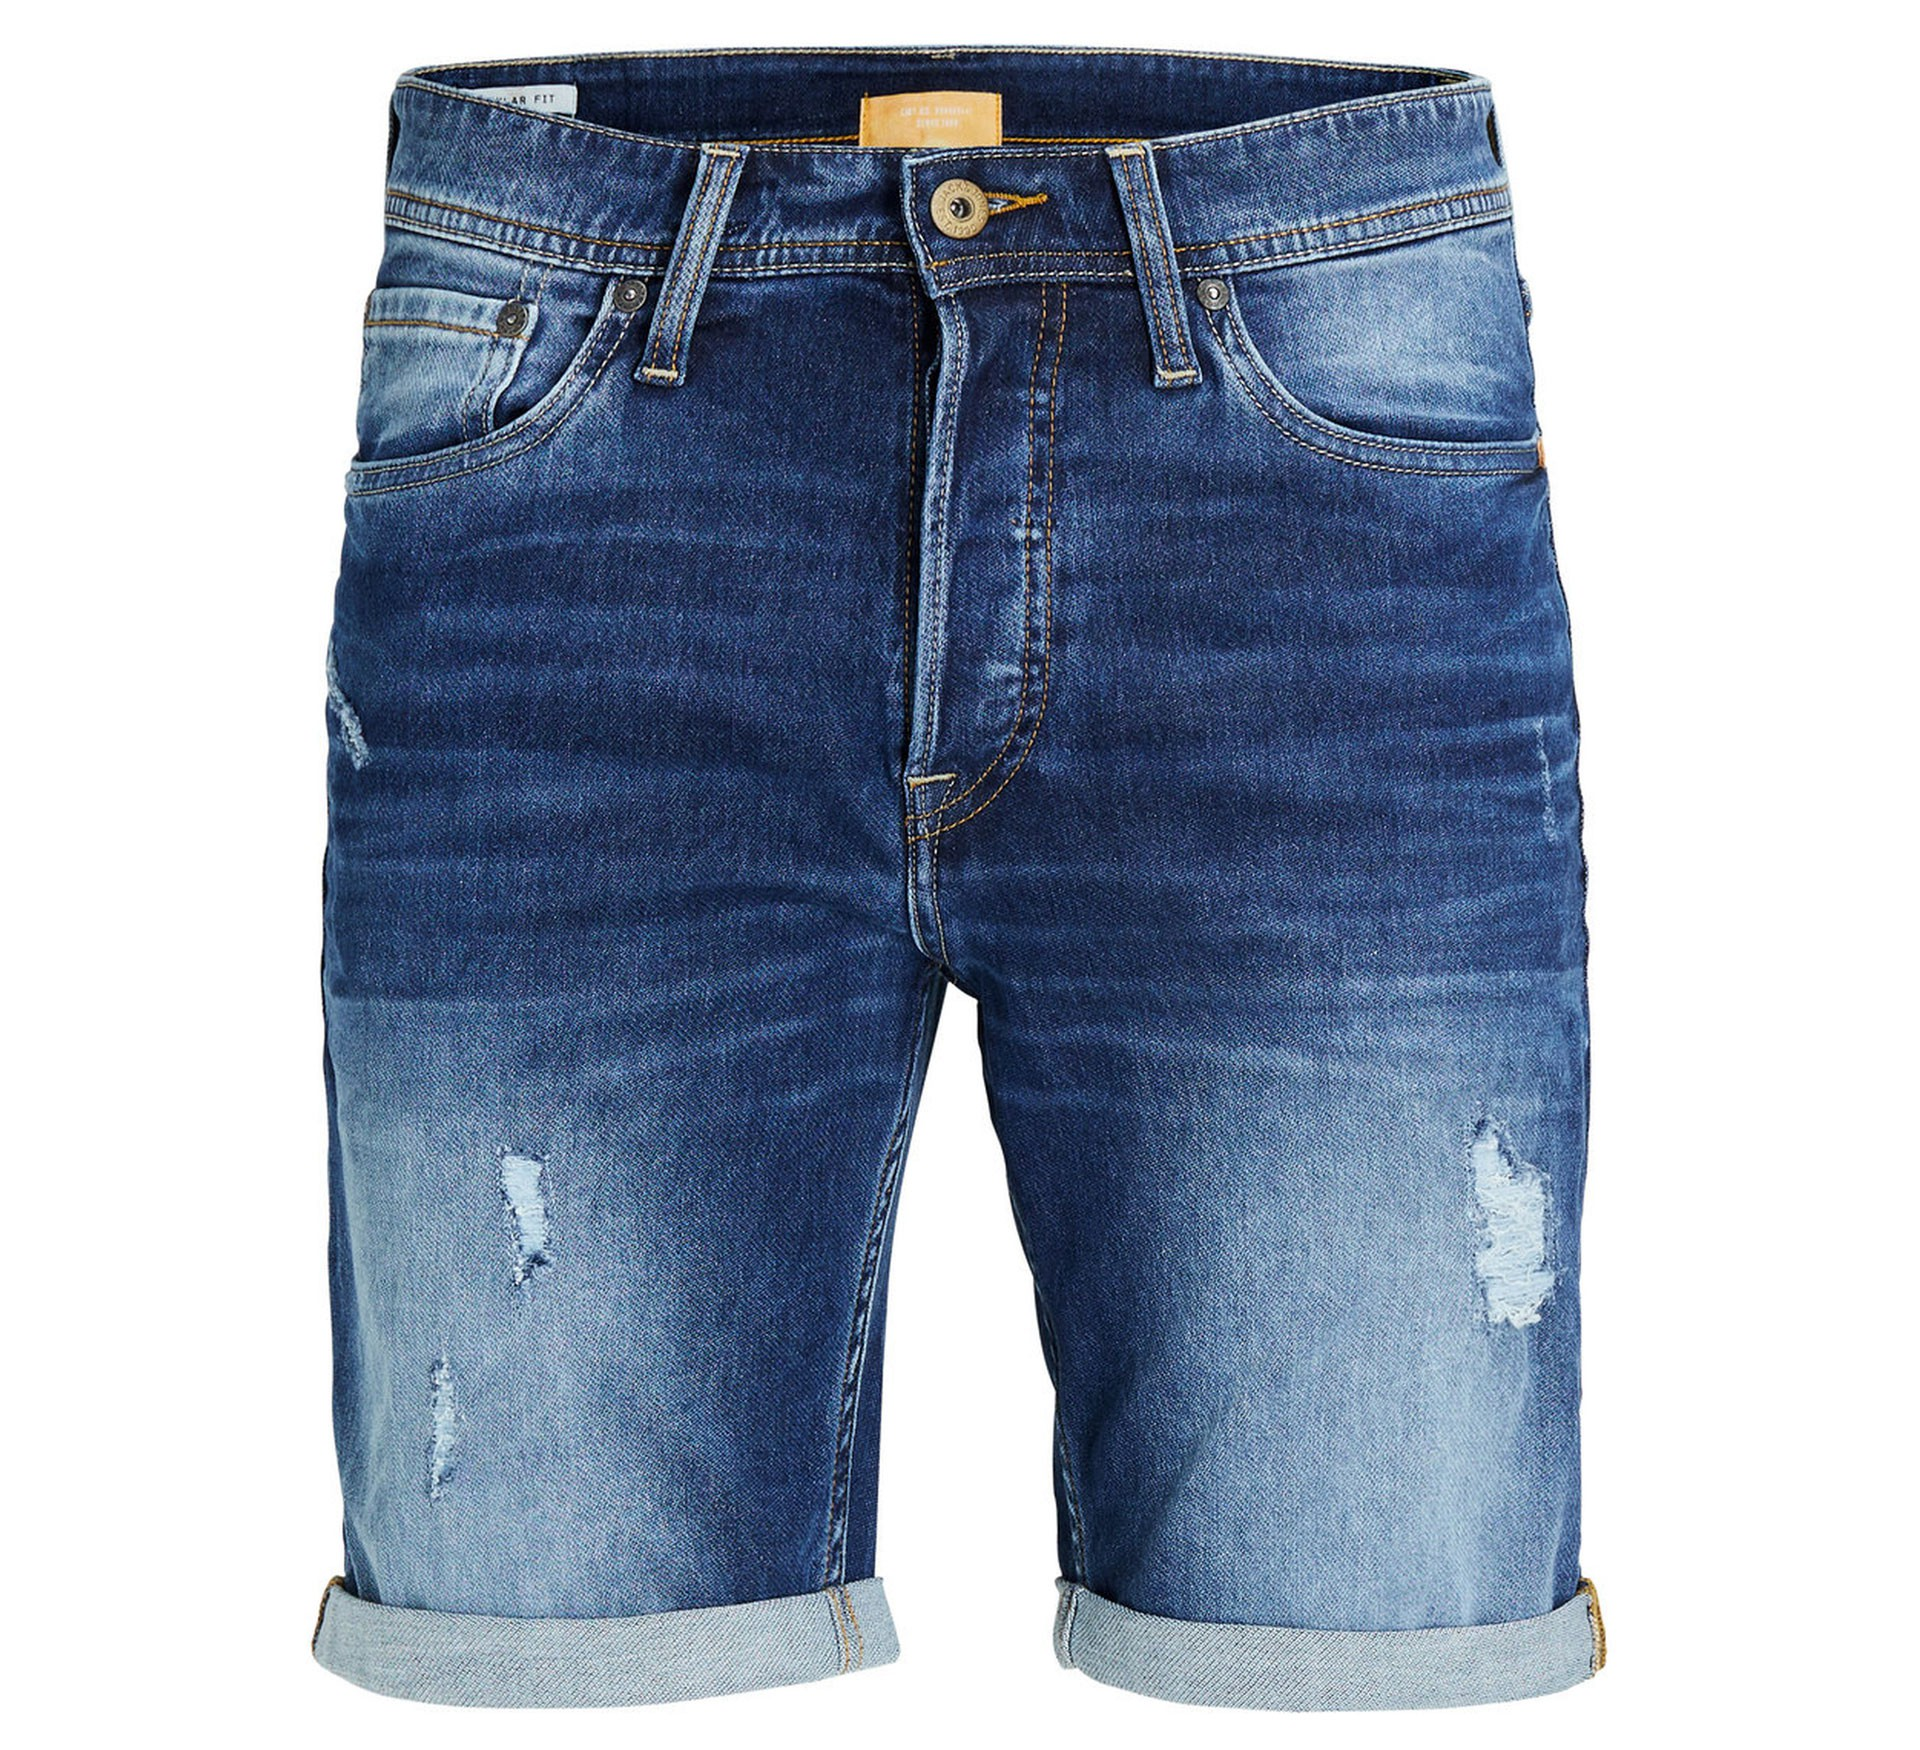 Plutosport - Jack & Jones Intelligence Rick Original Shorts SC115